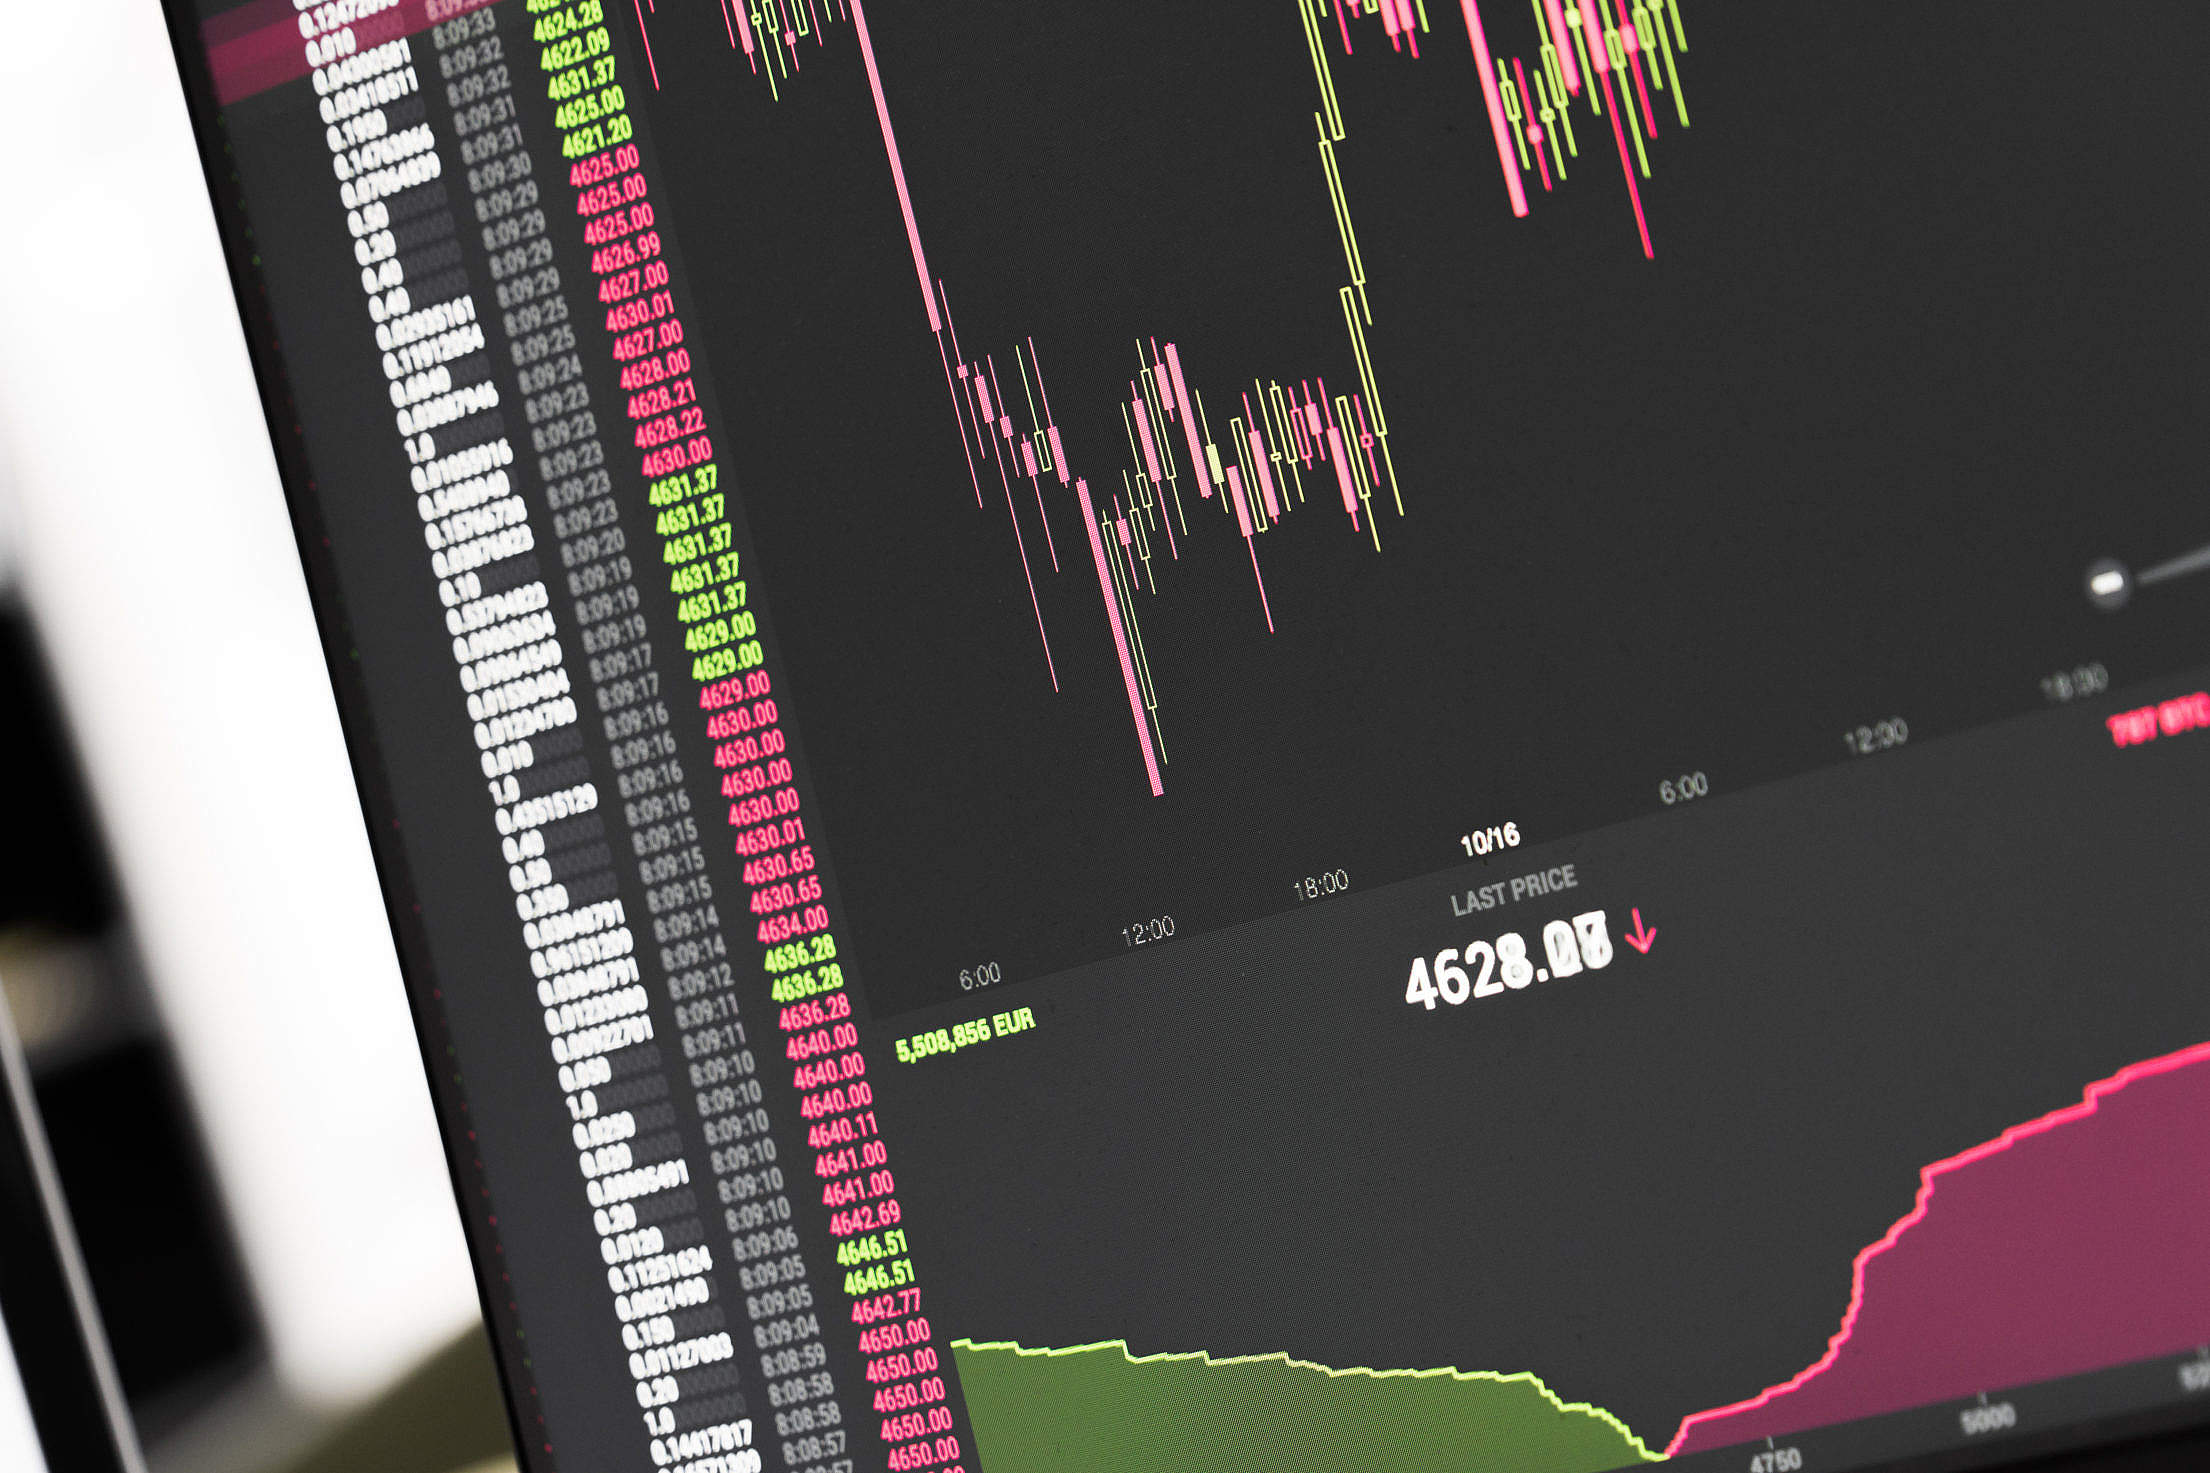 Bitcoin BTC Stock Exchange Live Price Chart Free Stock Photo